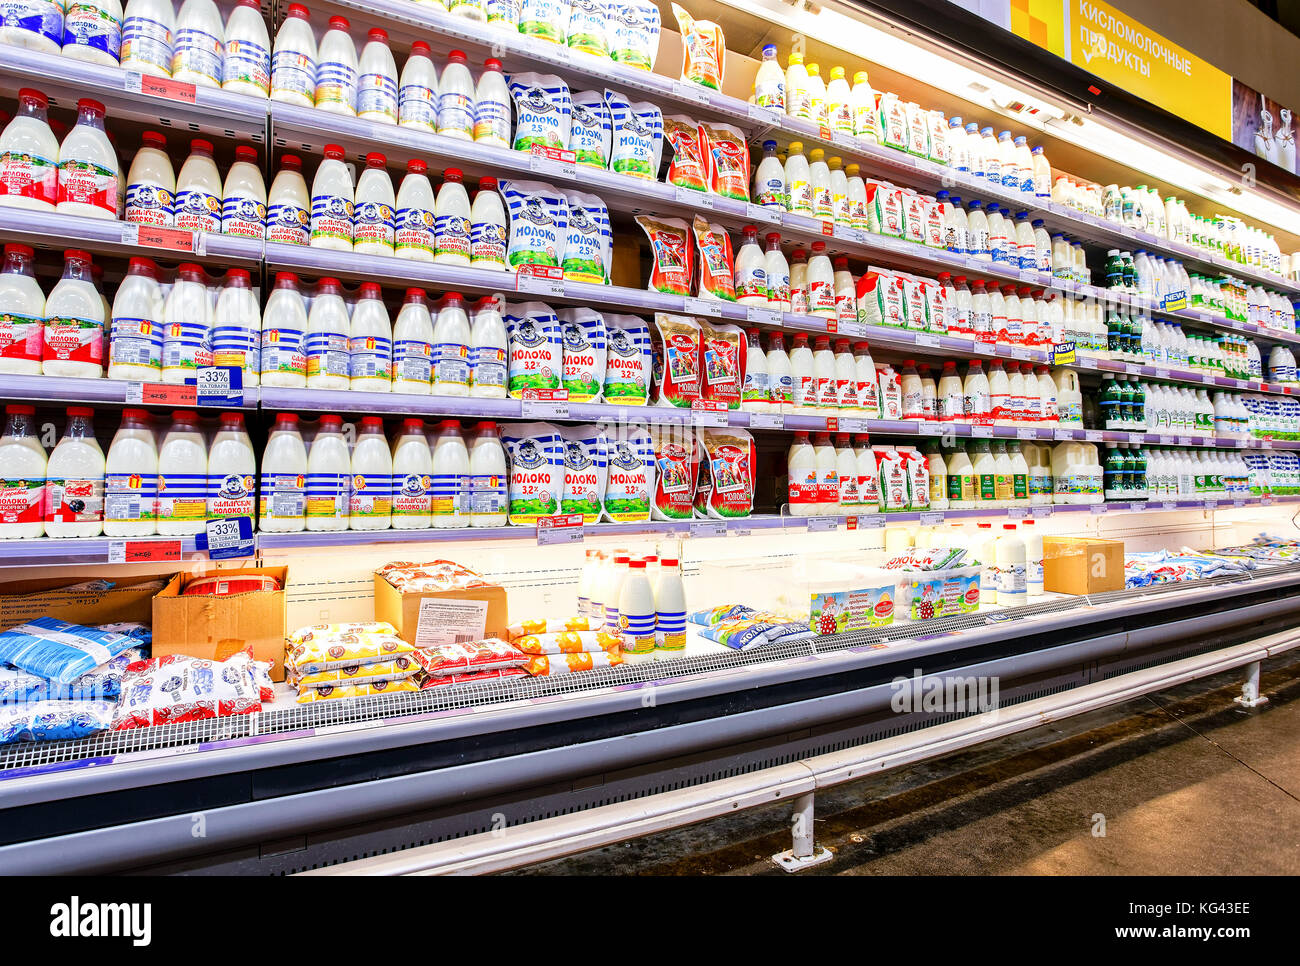 Samara, Russia - October 12, 2017: Fresh dairy products ready for sale at the hypermarket METRO. Metro Group is - Stock Image